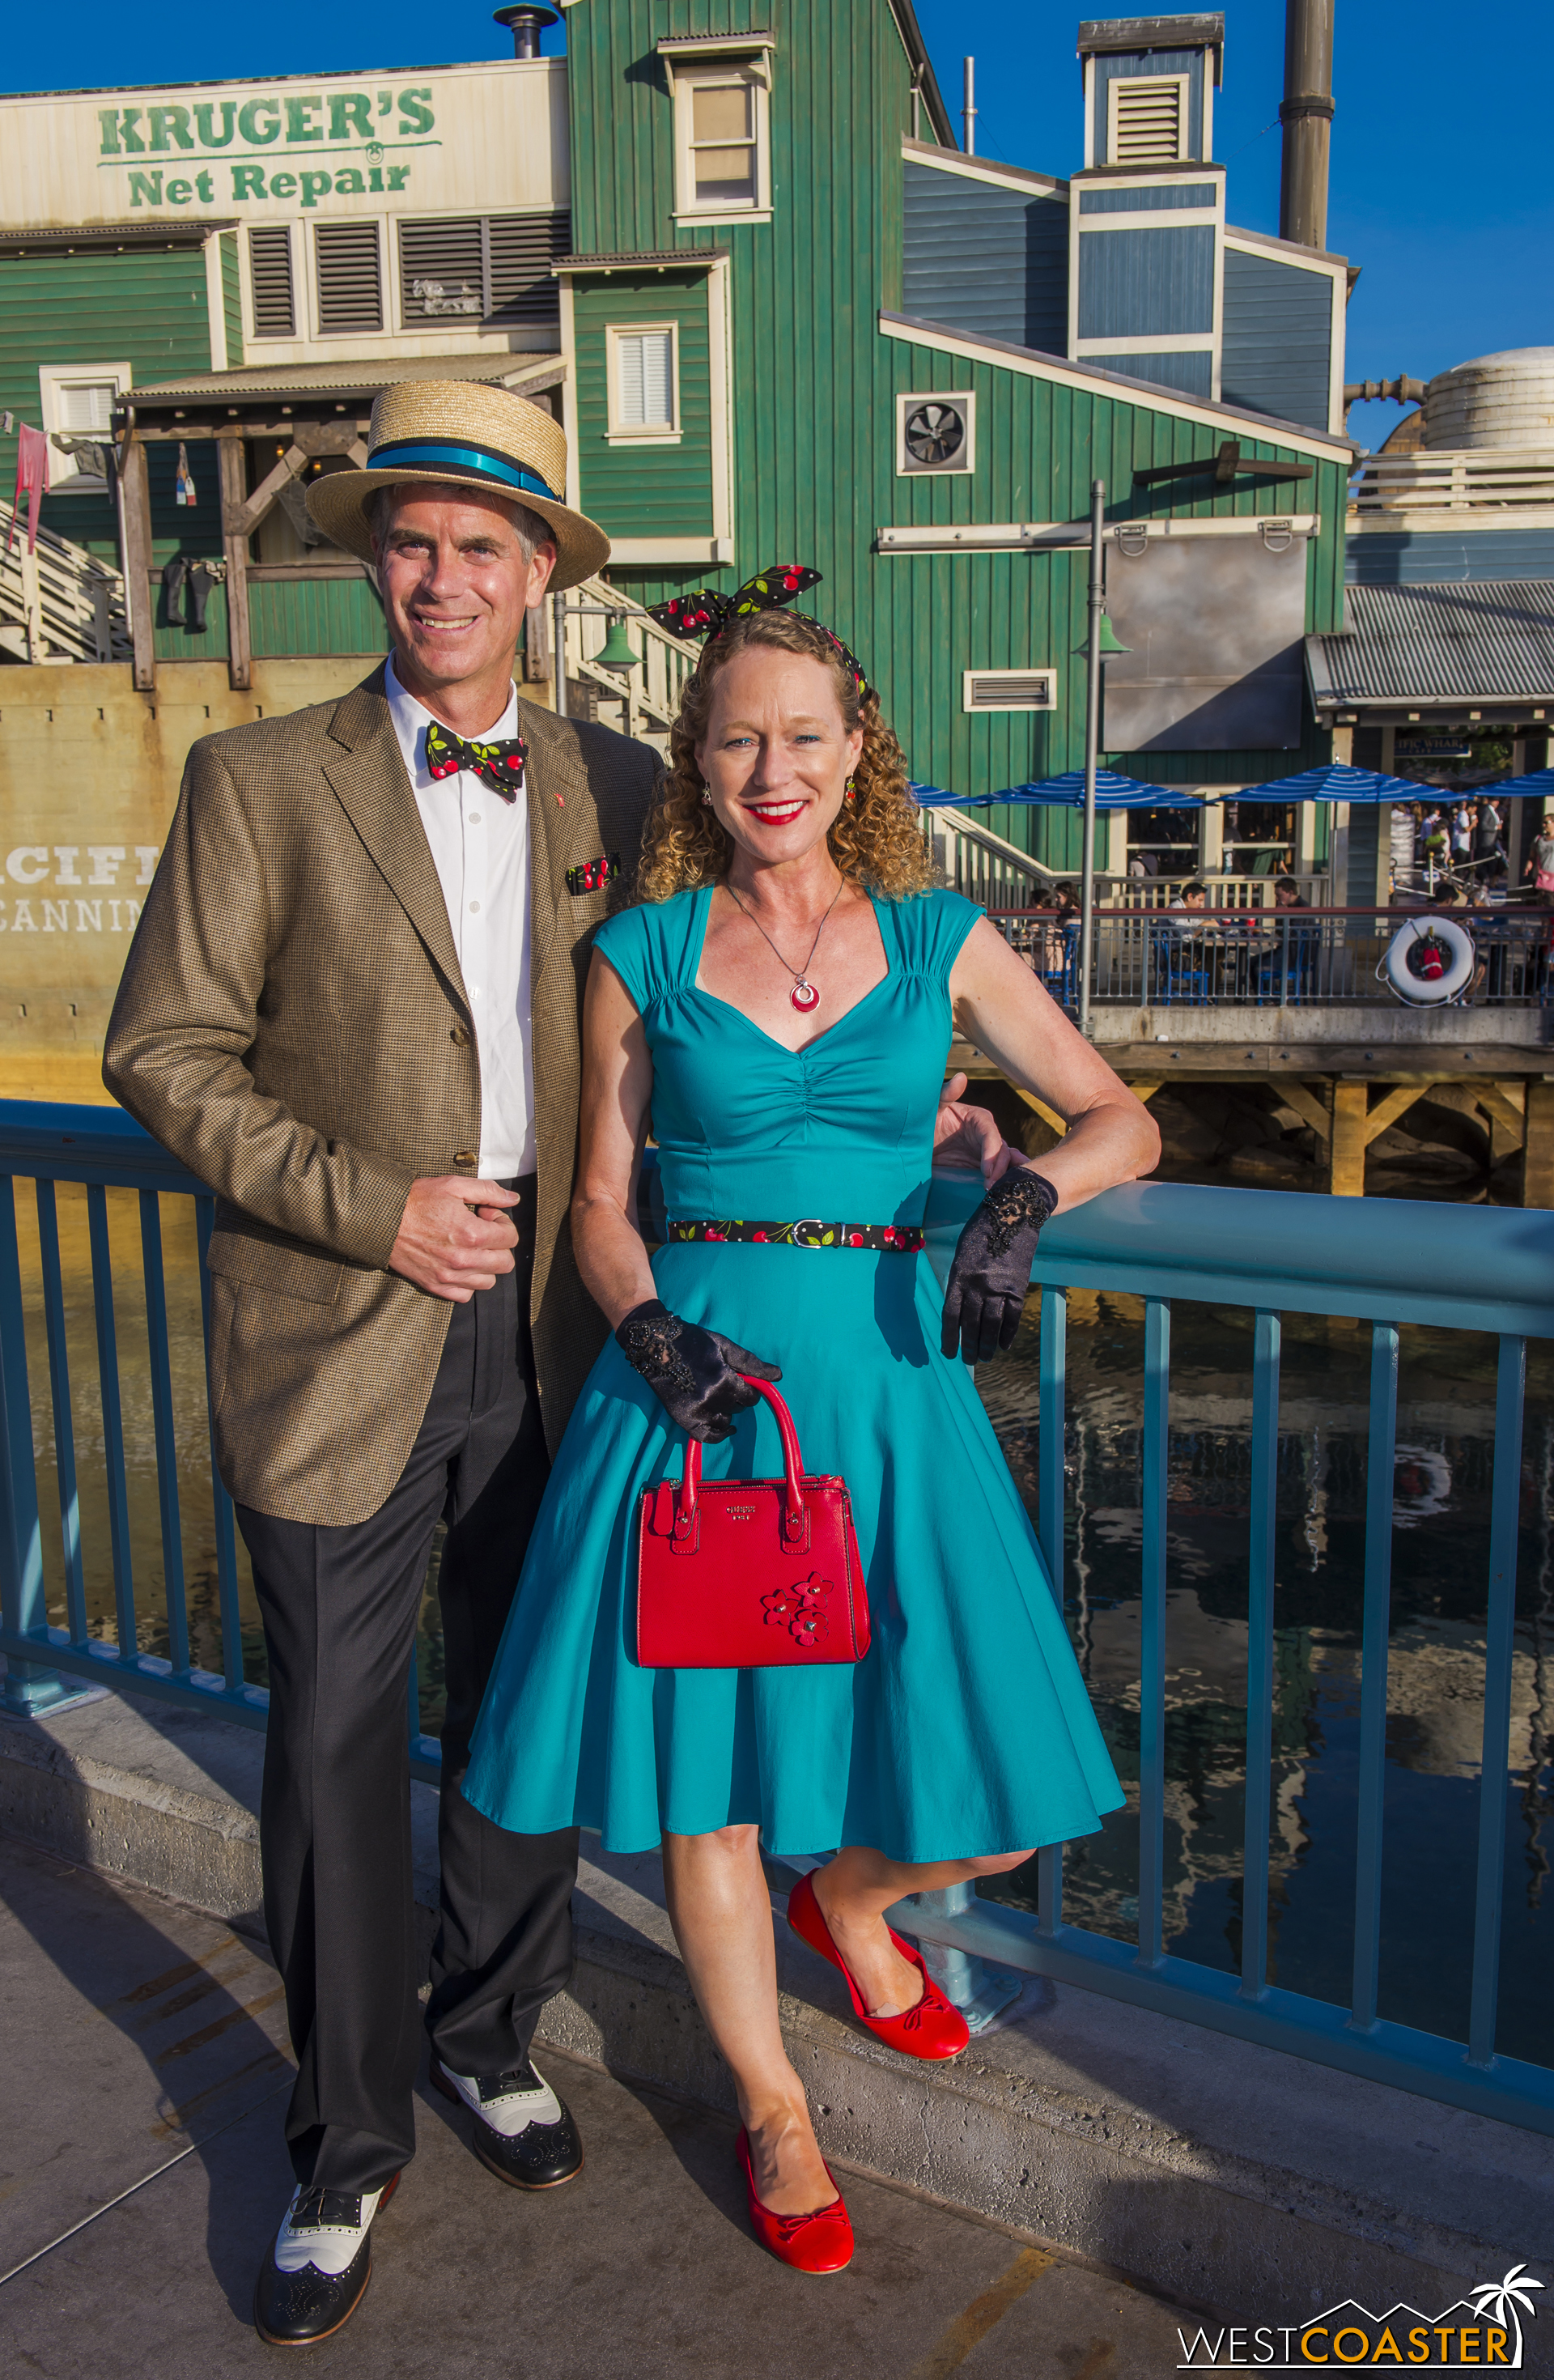 Another familiar face, Todd Young (  @Disneyland67   on Instagram), a fantastic photographer who owns multiple actual vintage cameras and is consistently on point with his Dapper Day style. And his wife too.